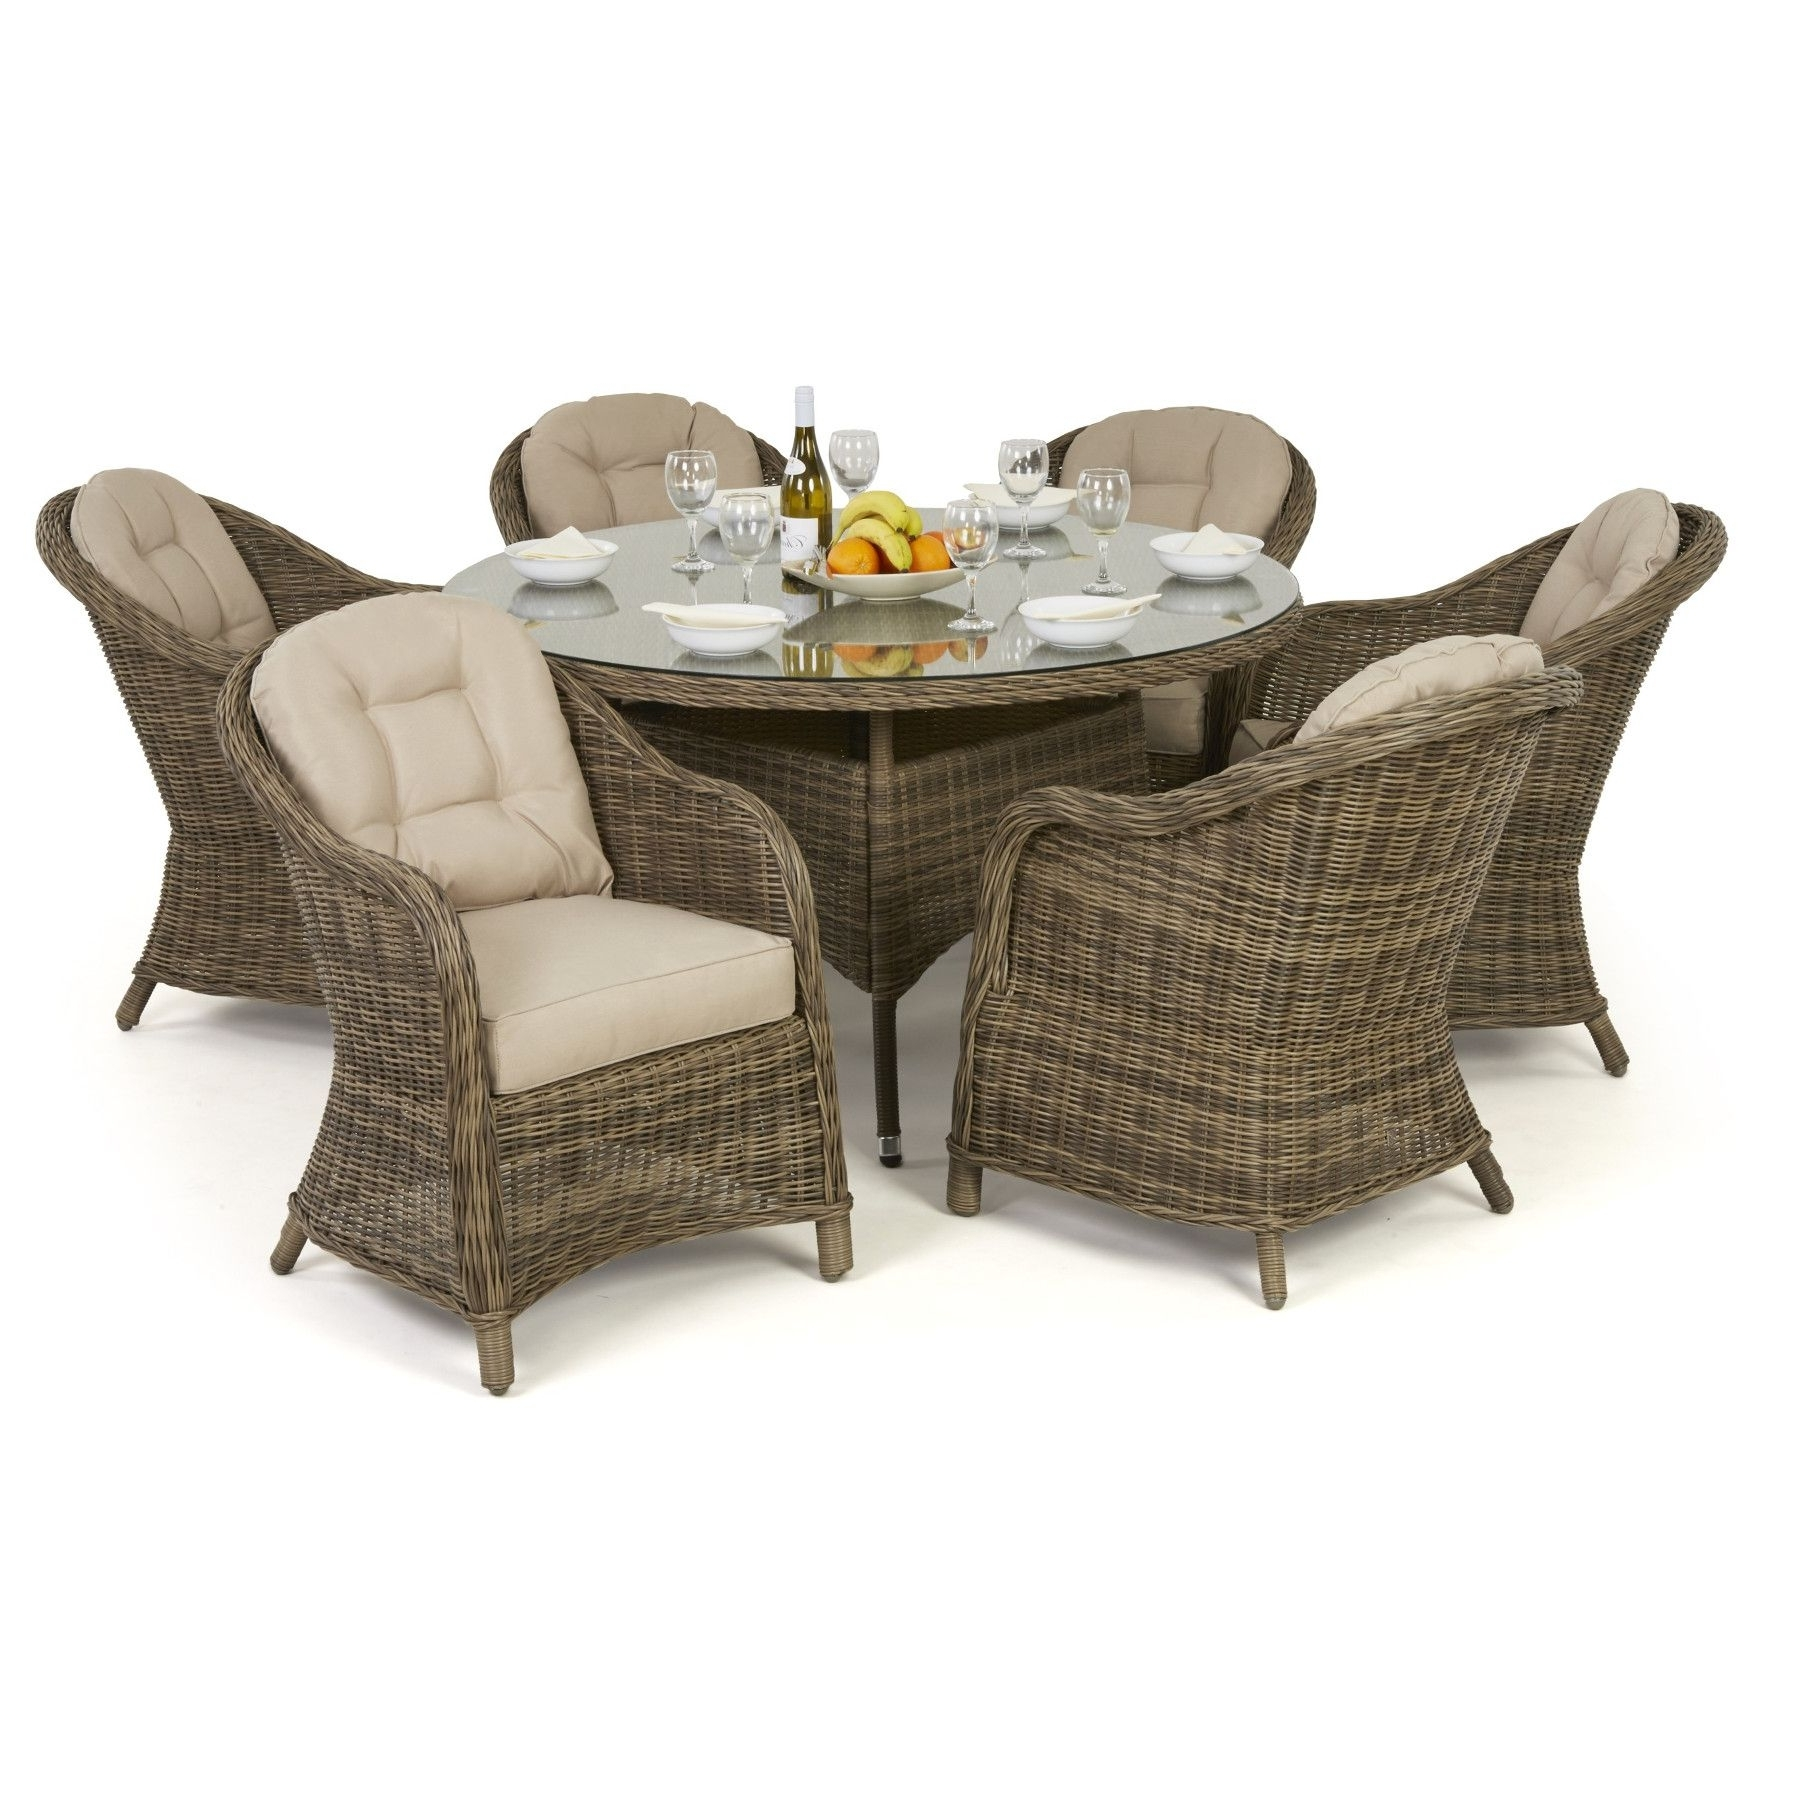 Maze Rattan Winchester Round Dining Table With 6 Round Chairs Garden In Well Known 6 Seat Round Dining Tables (View 14 of 25)